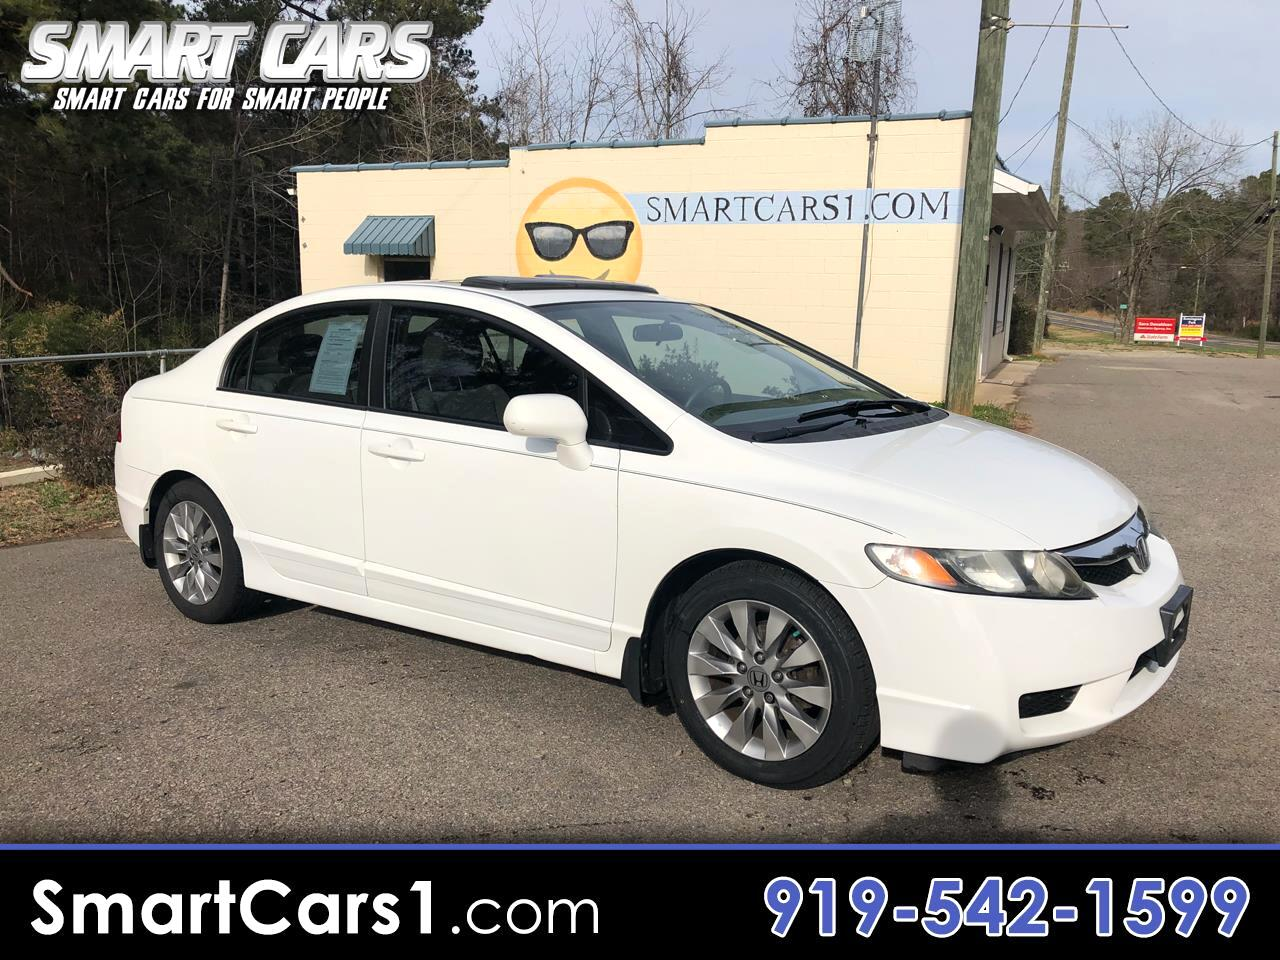 Used 2010 Honda Civic For Sale In Pittsboro Nc 27312 Smart Cars By